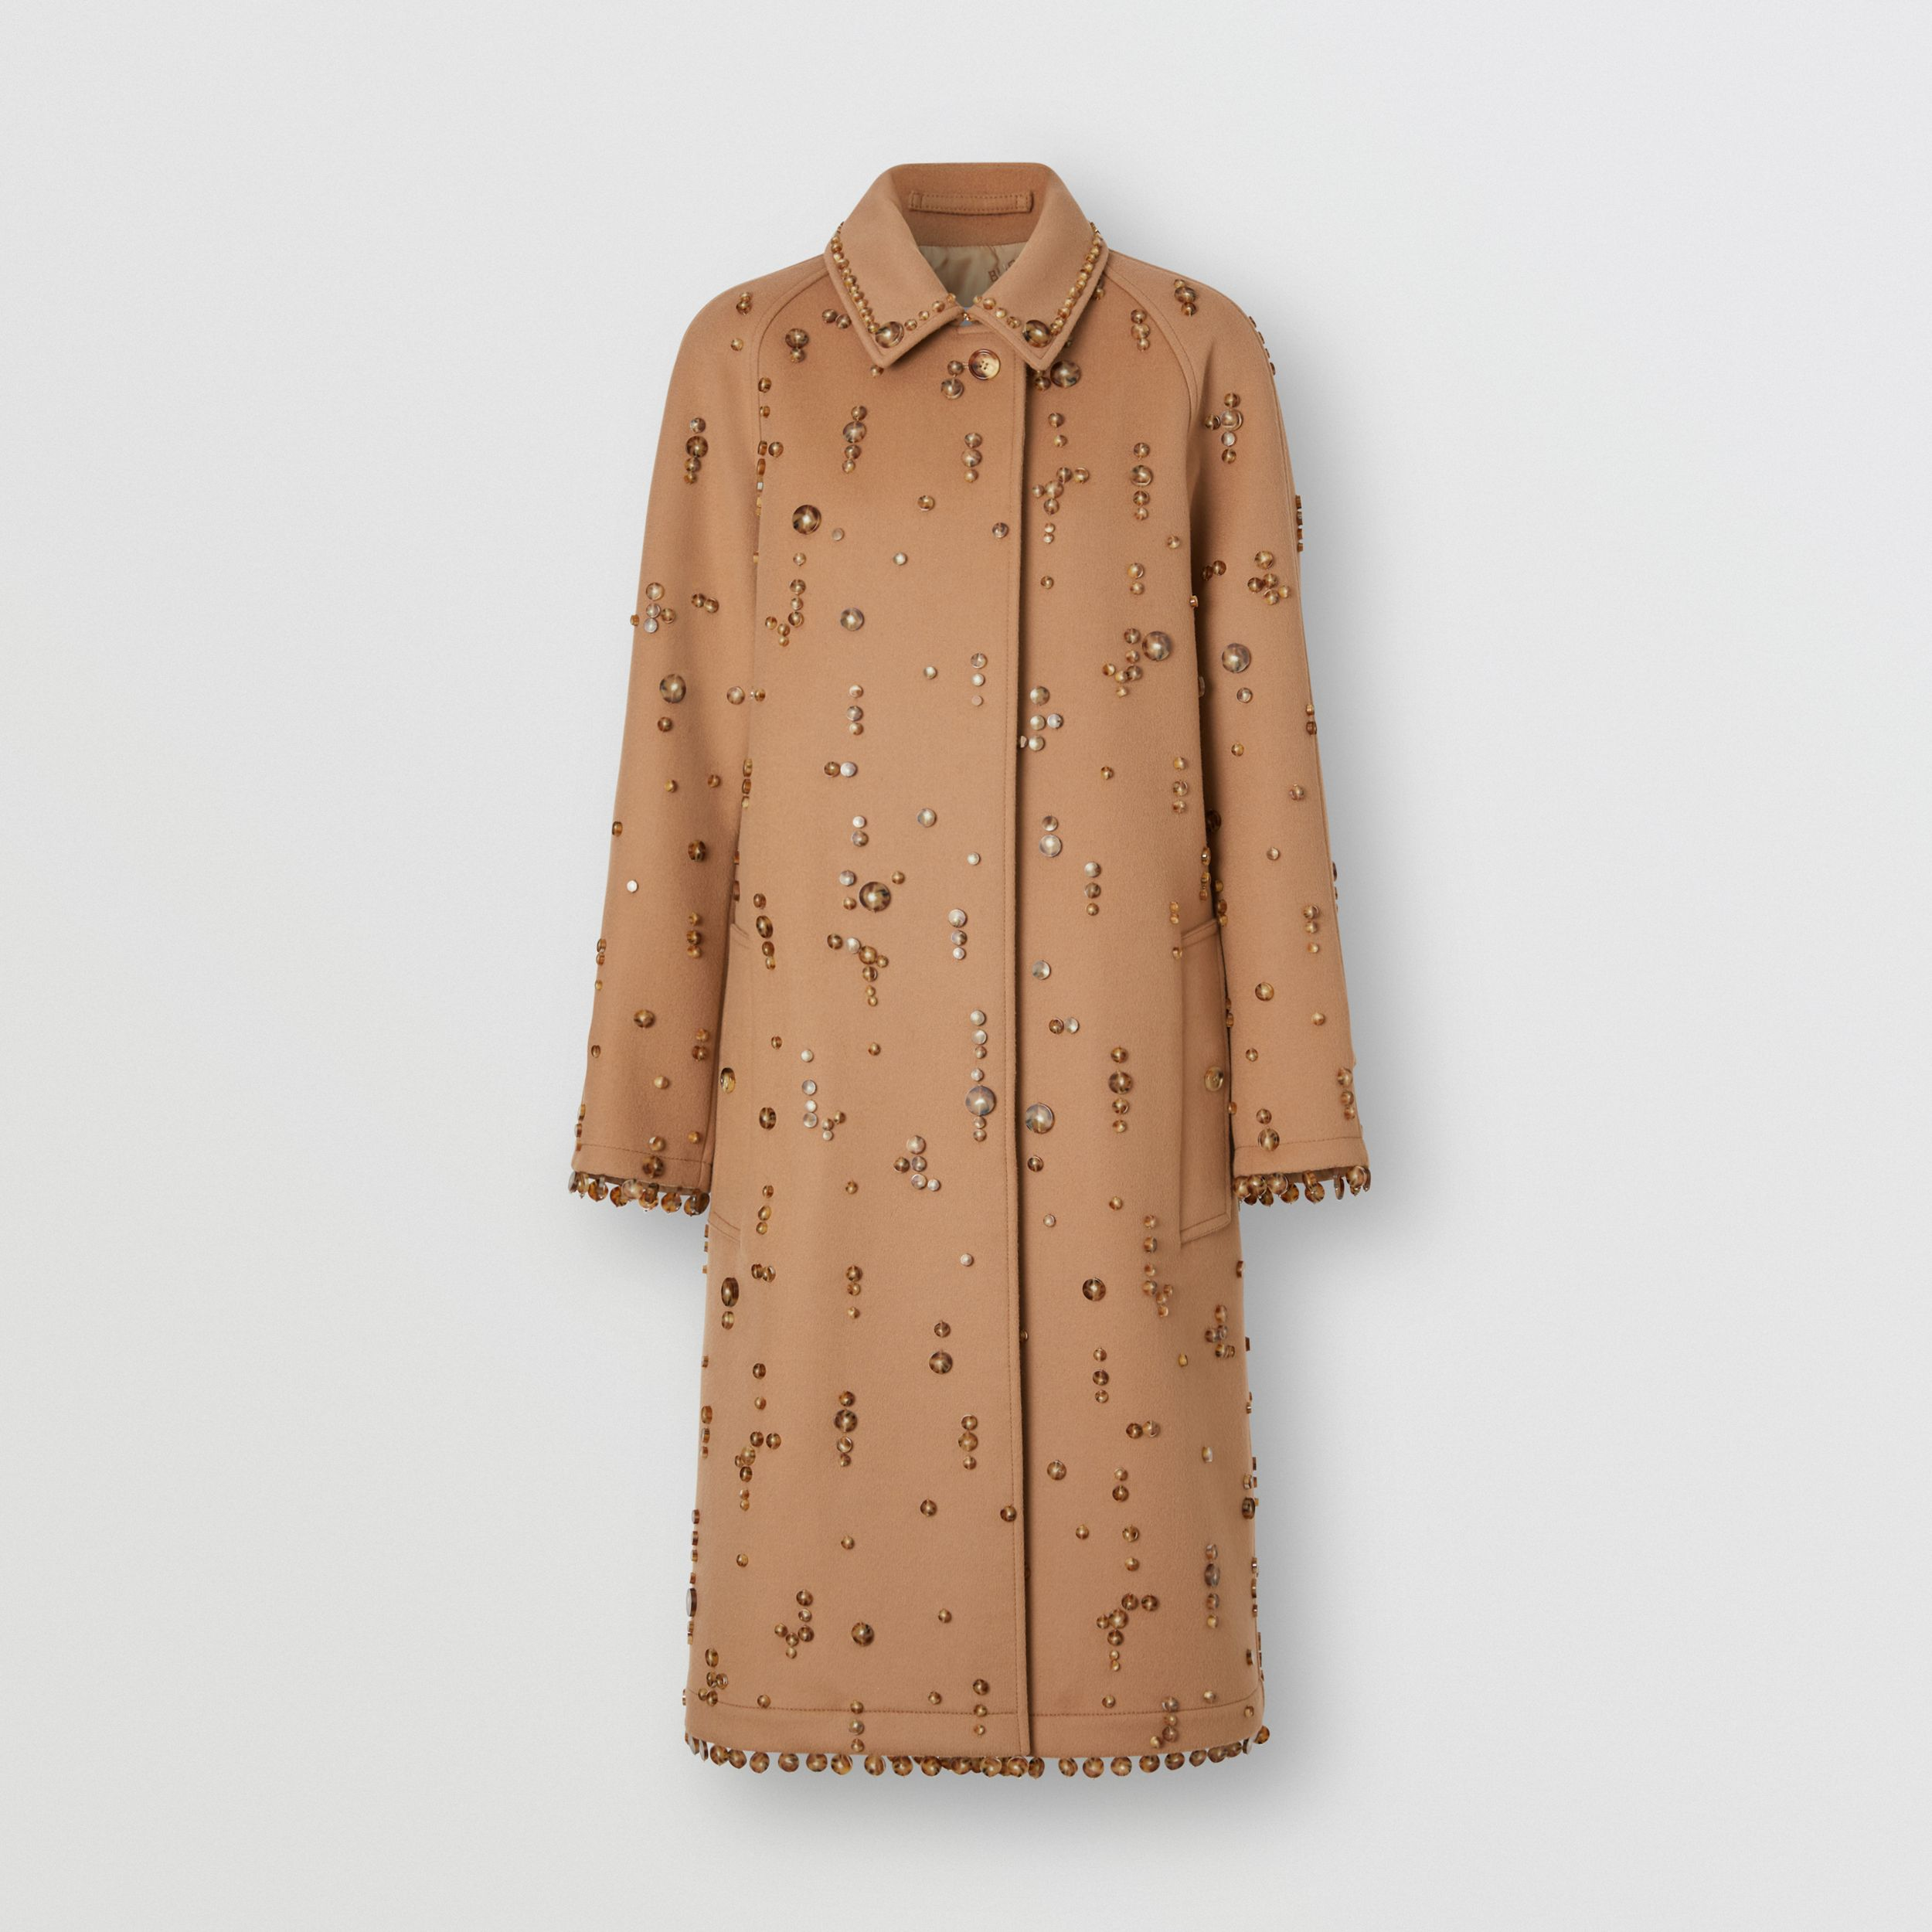 Embellished Wool Cashmere Car Coat in Camel - Women | Burberry - 4